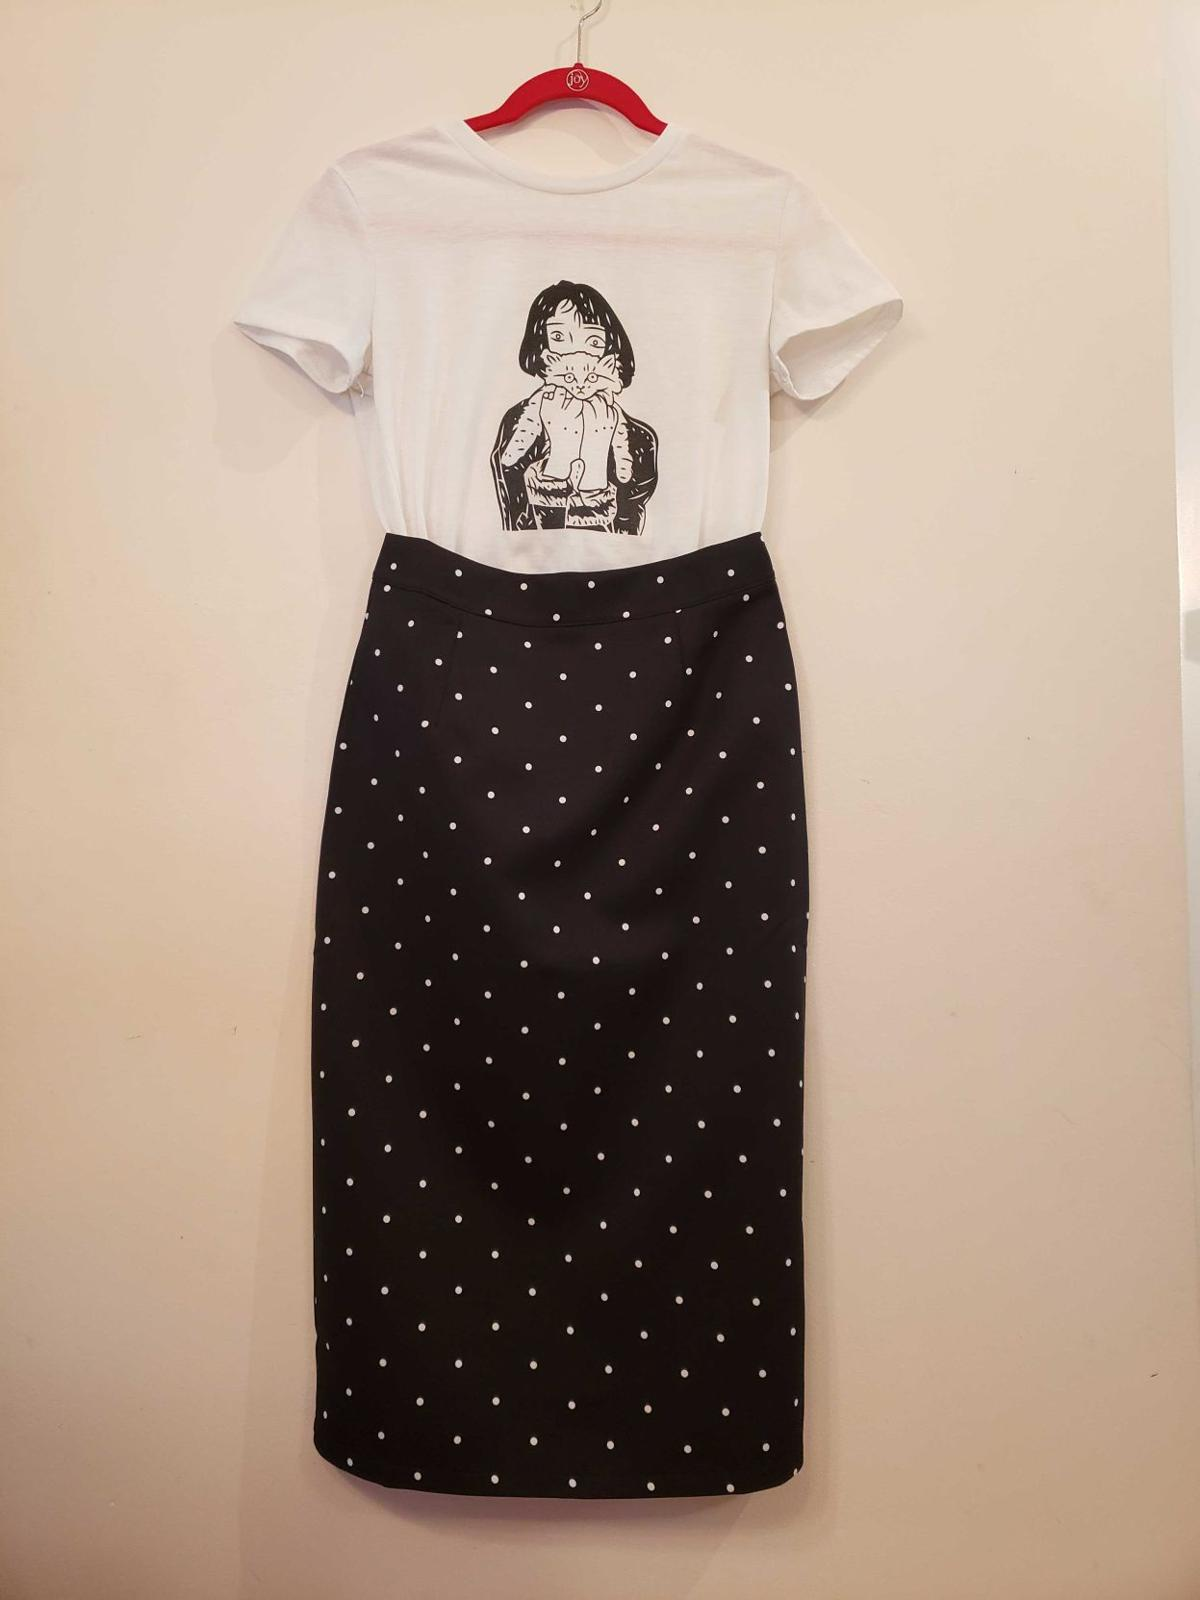 A short-sleeved t-shirt and a midi skirt hang on display